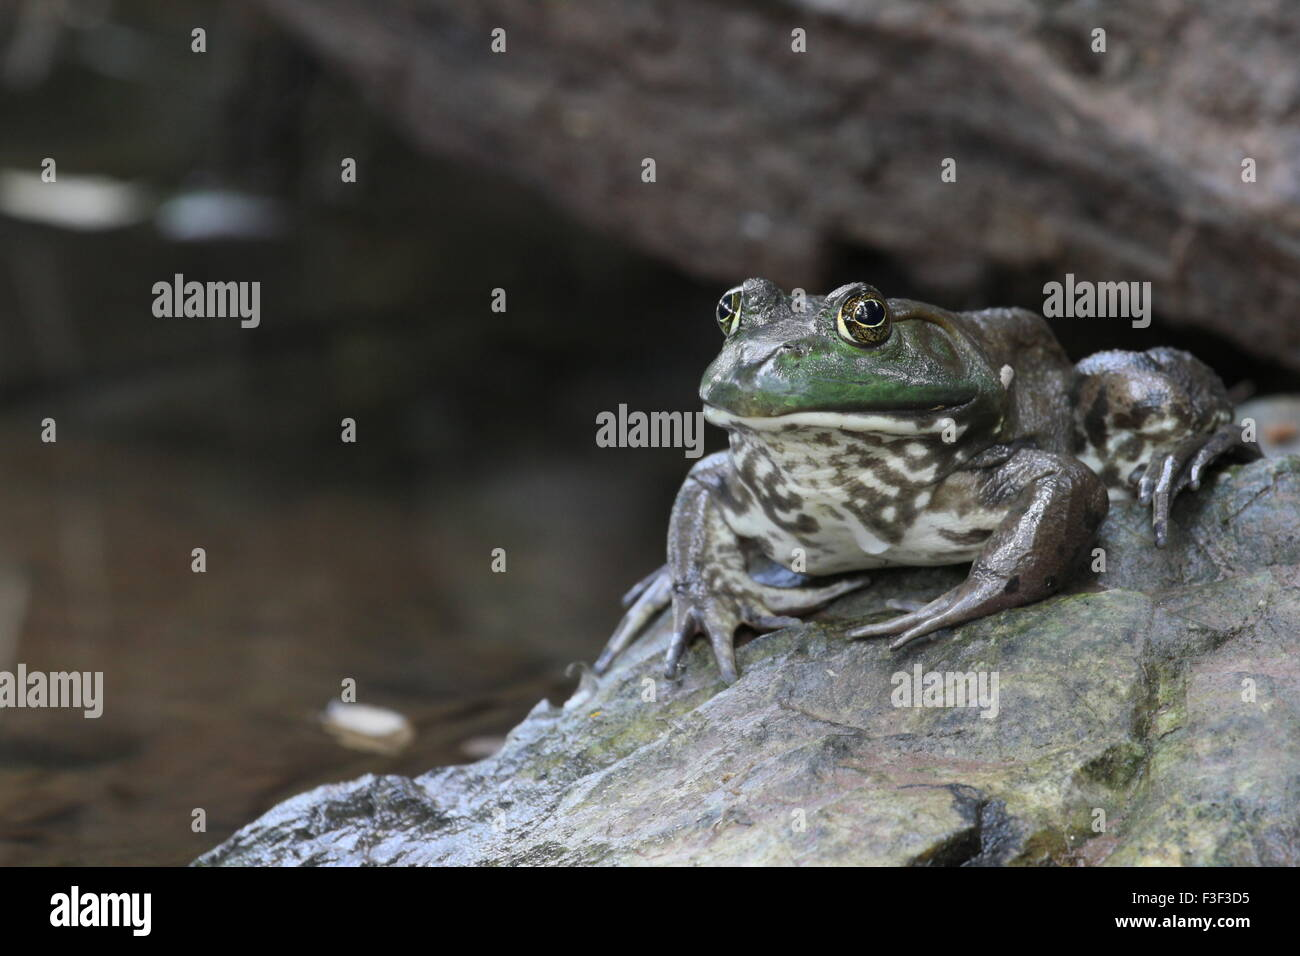 Frog sitting on a wet rock looking at the camera. - Stock Image